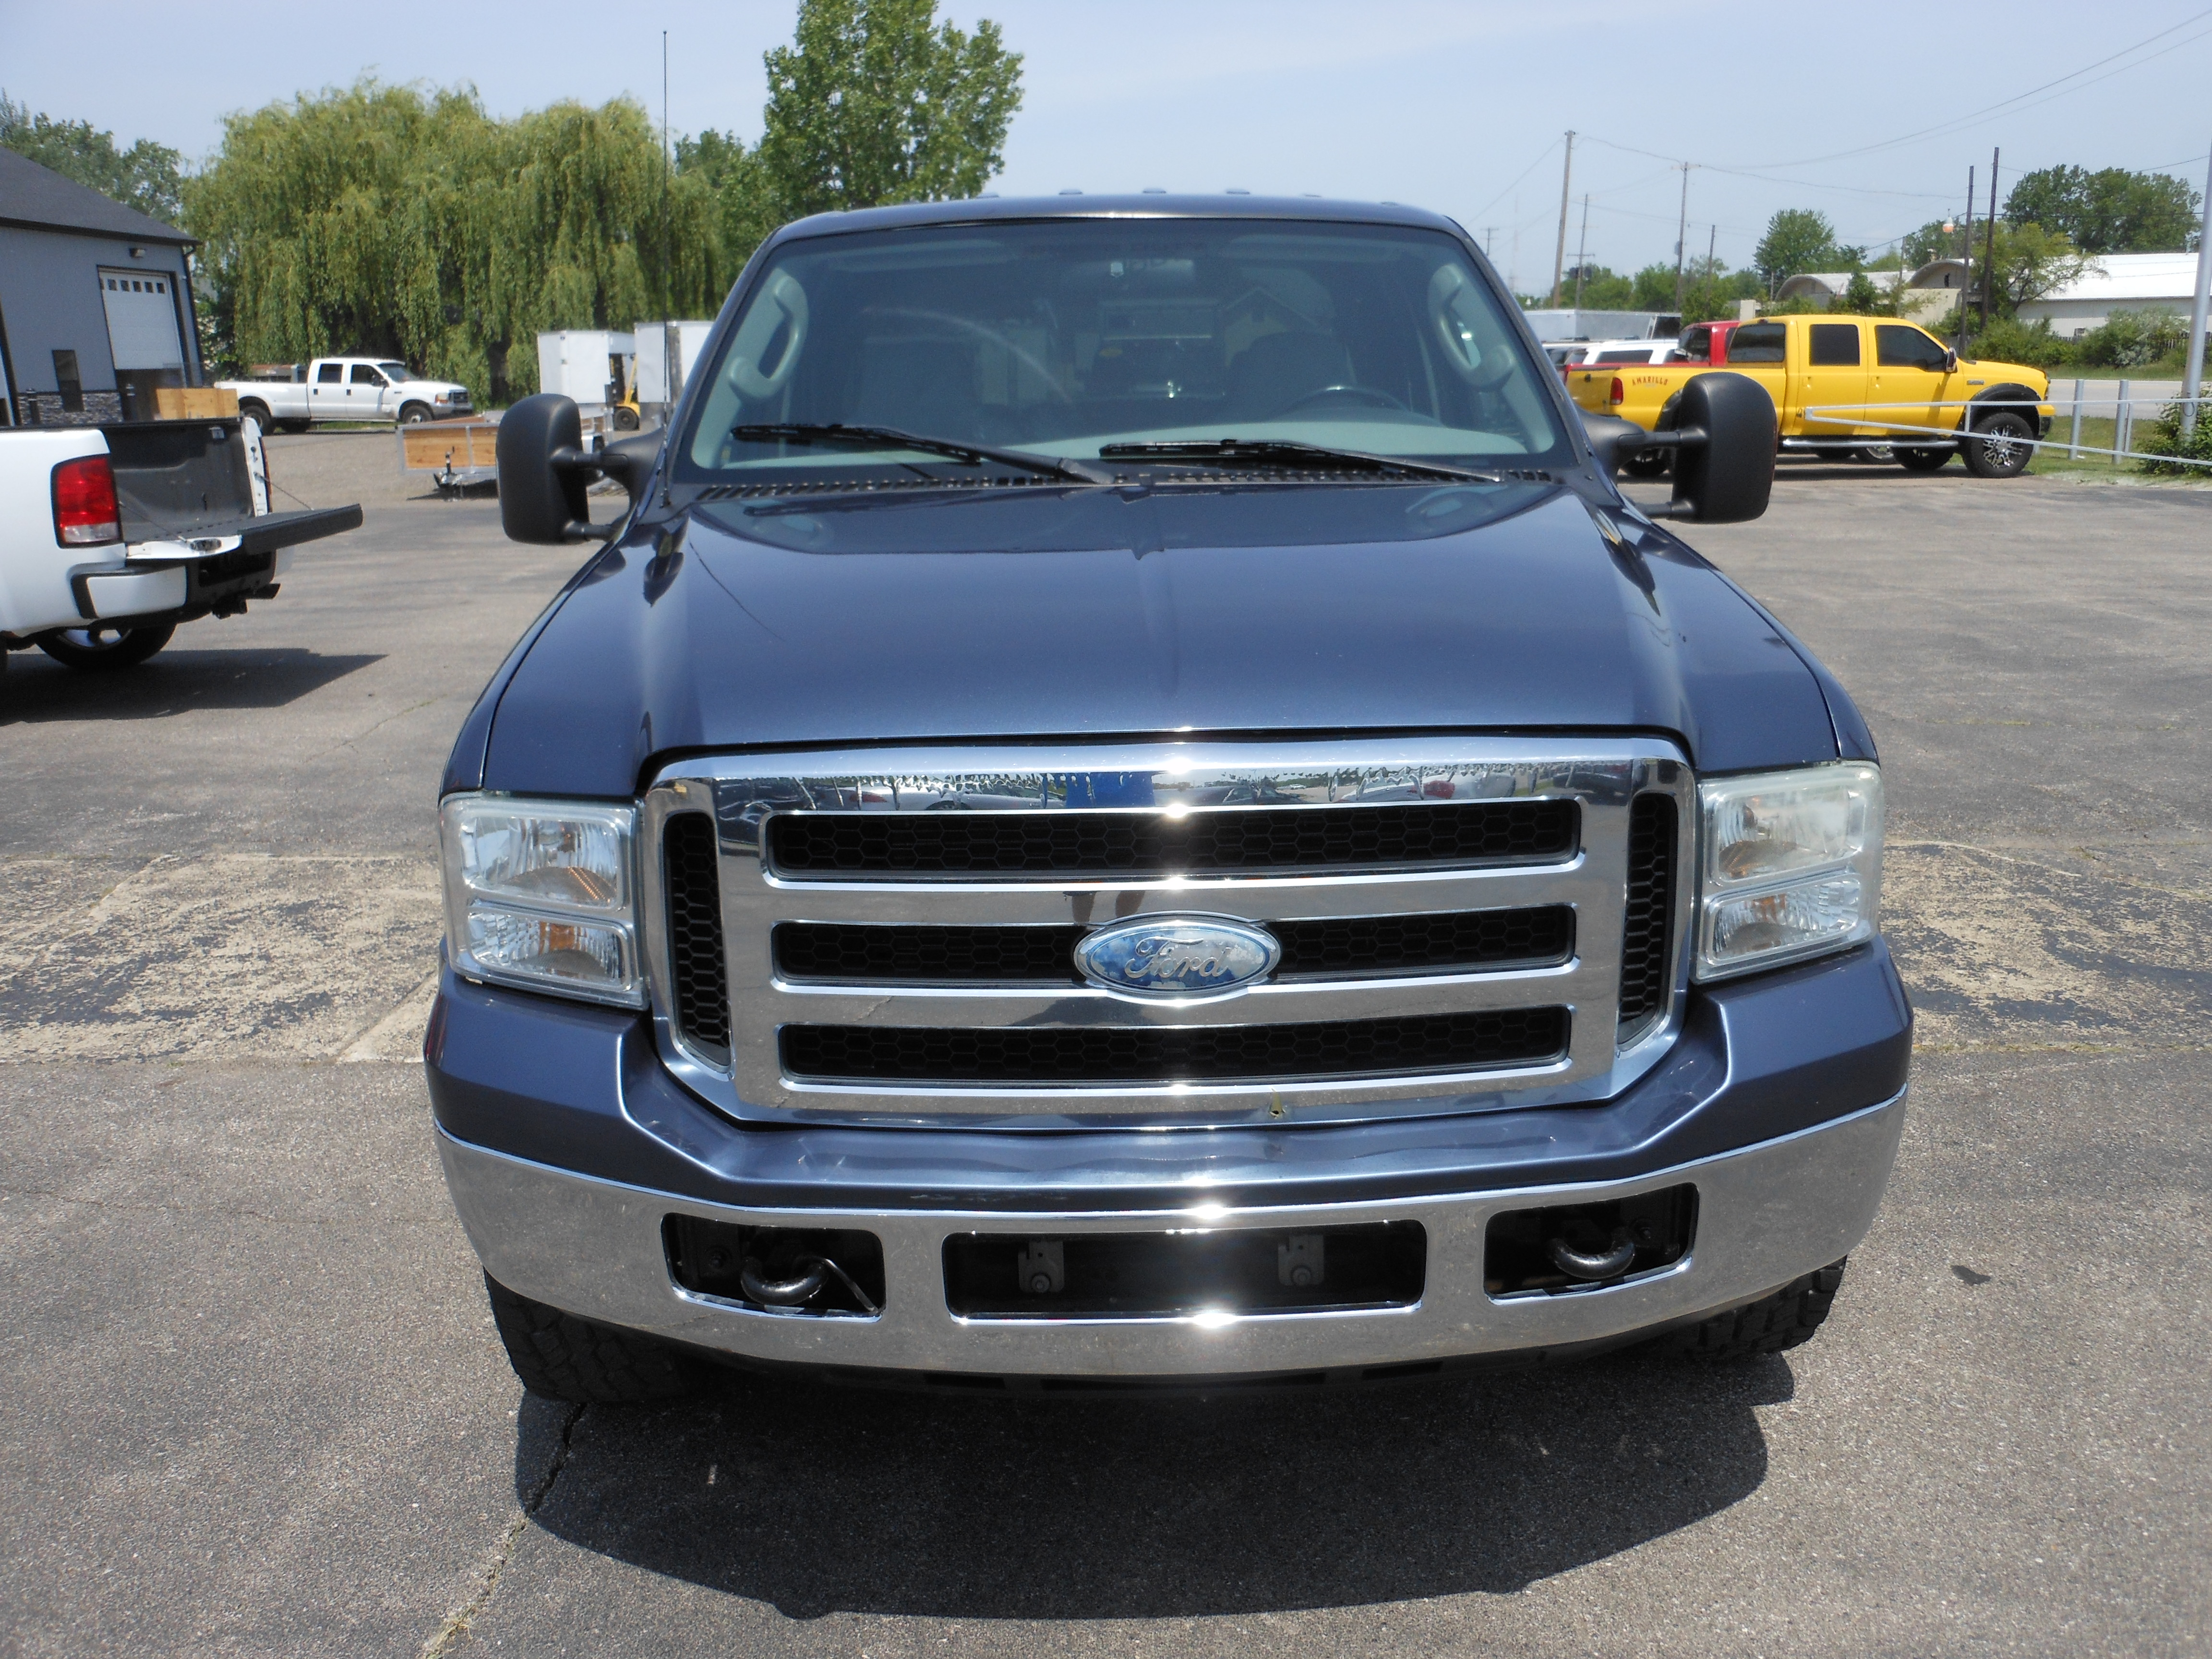 For Sale 2007 Ford F 250 Crew Cab 4x4 Diesel Denam Auto 1980 44 Factory Brake Controller Tow Package Power Windows Locks And Mirrors Am Fm Cd Bed Liner Running Boards